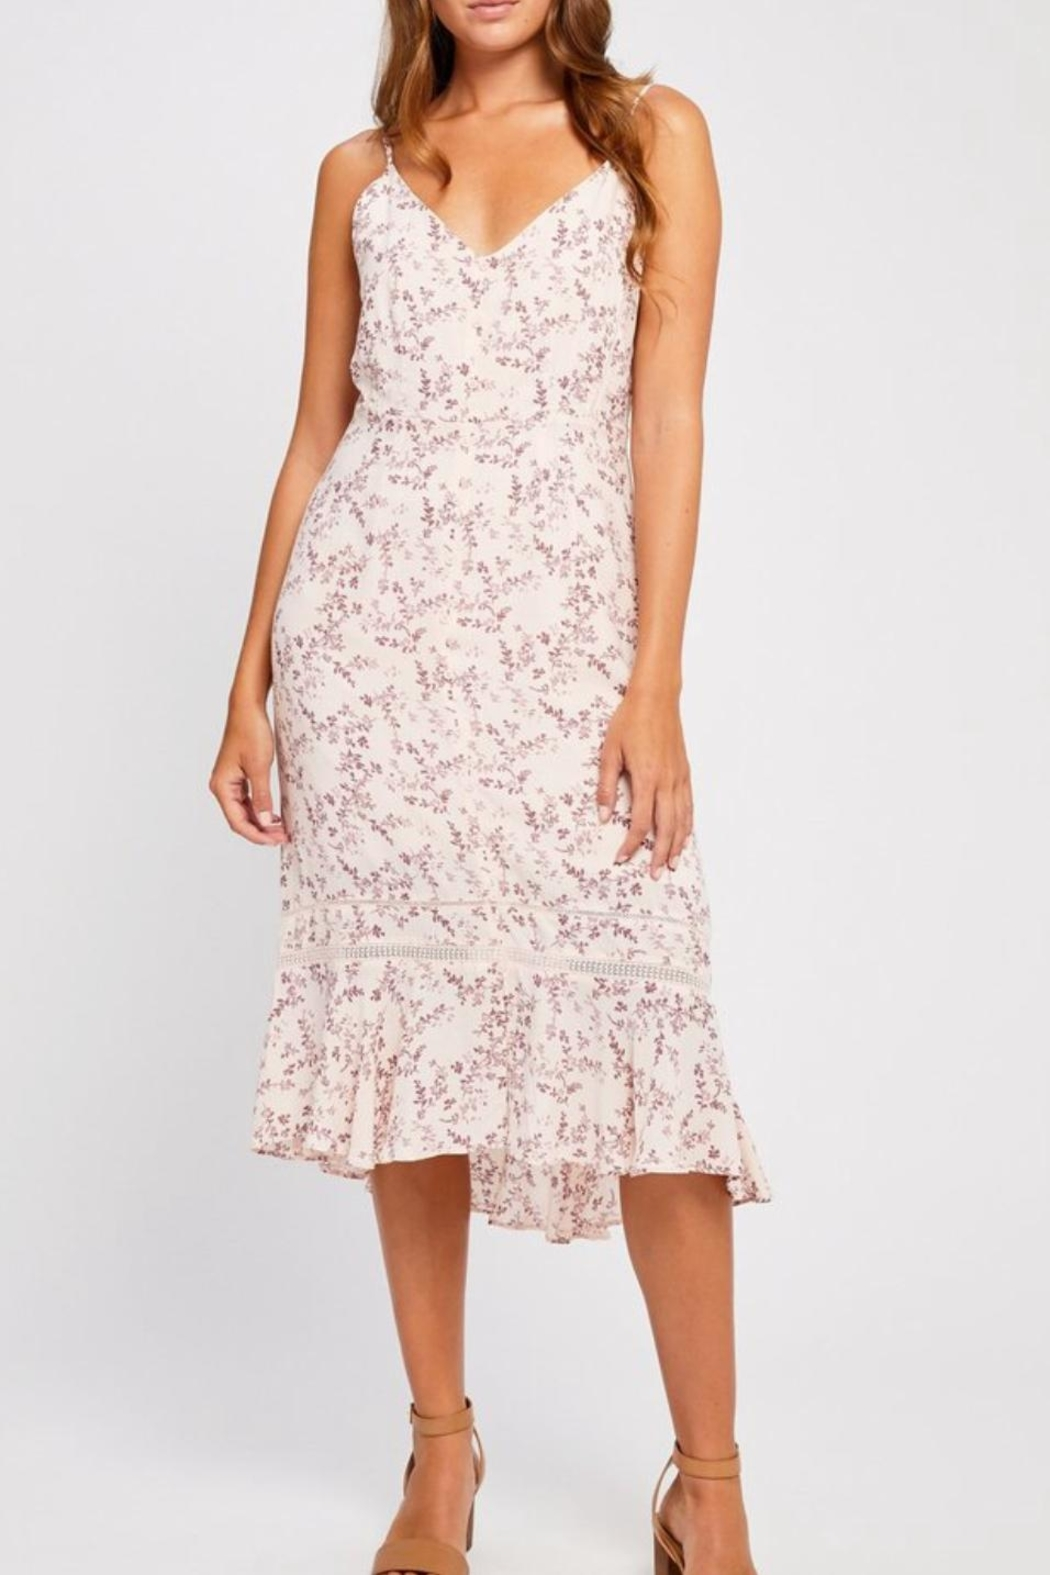 Gentle Fawn Pink Floral Dress - Main Image